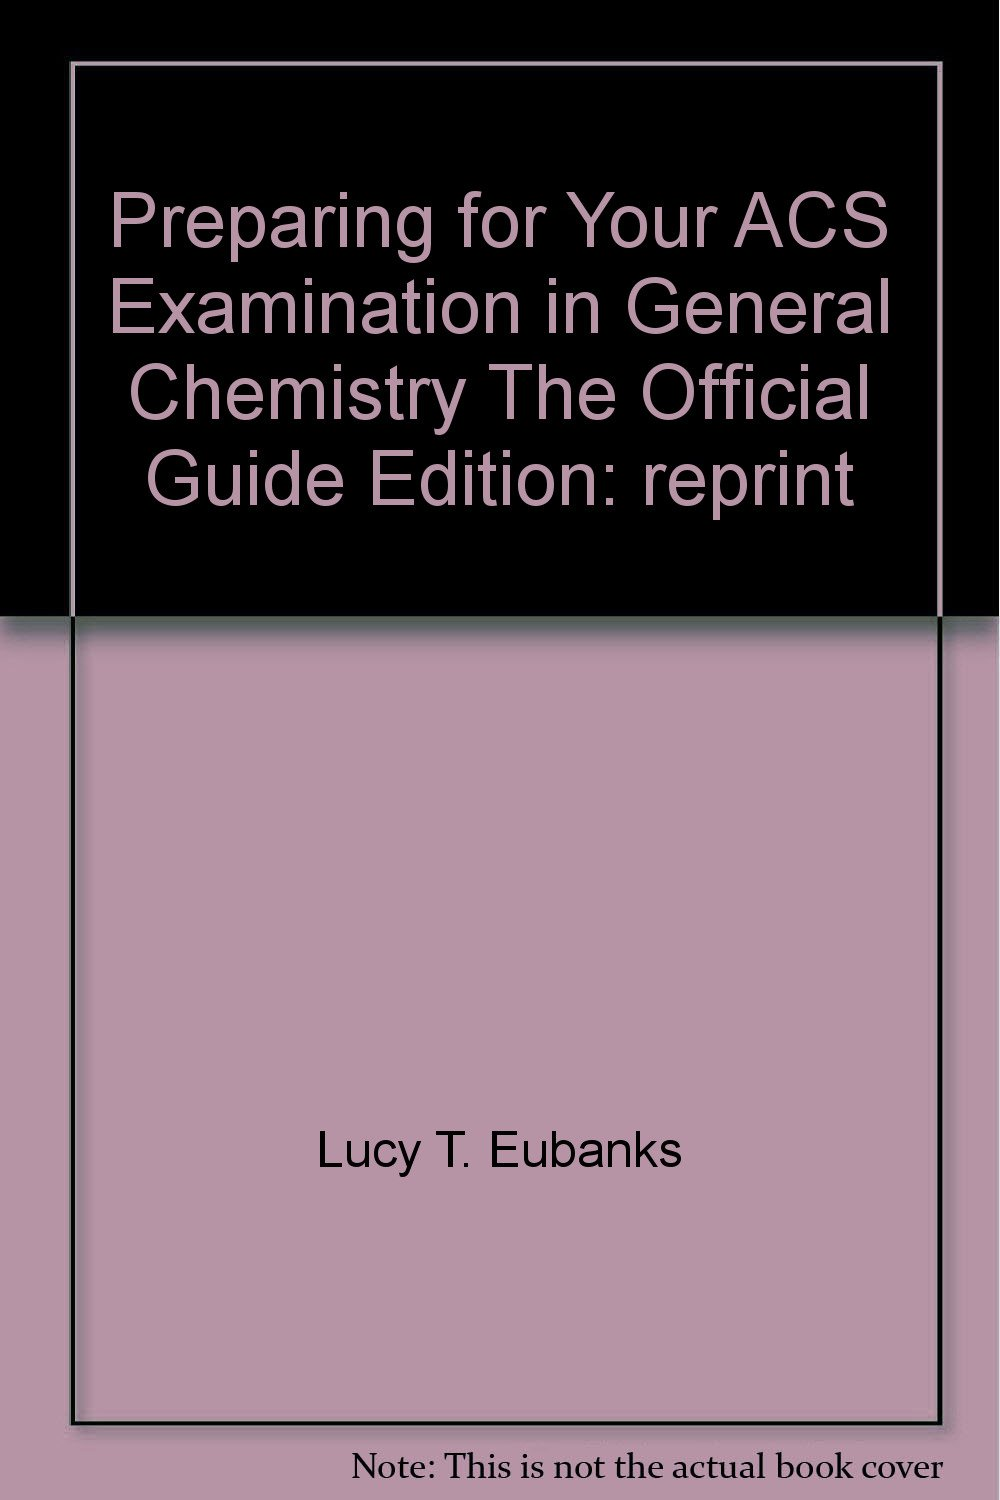 Preparing for your acs examination in general chemistry the preparing for your acs examination in general chemistry the official guide 9780830005444 amazon books fandeluxe Images